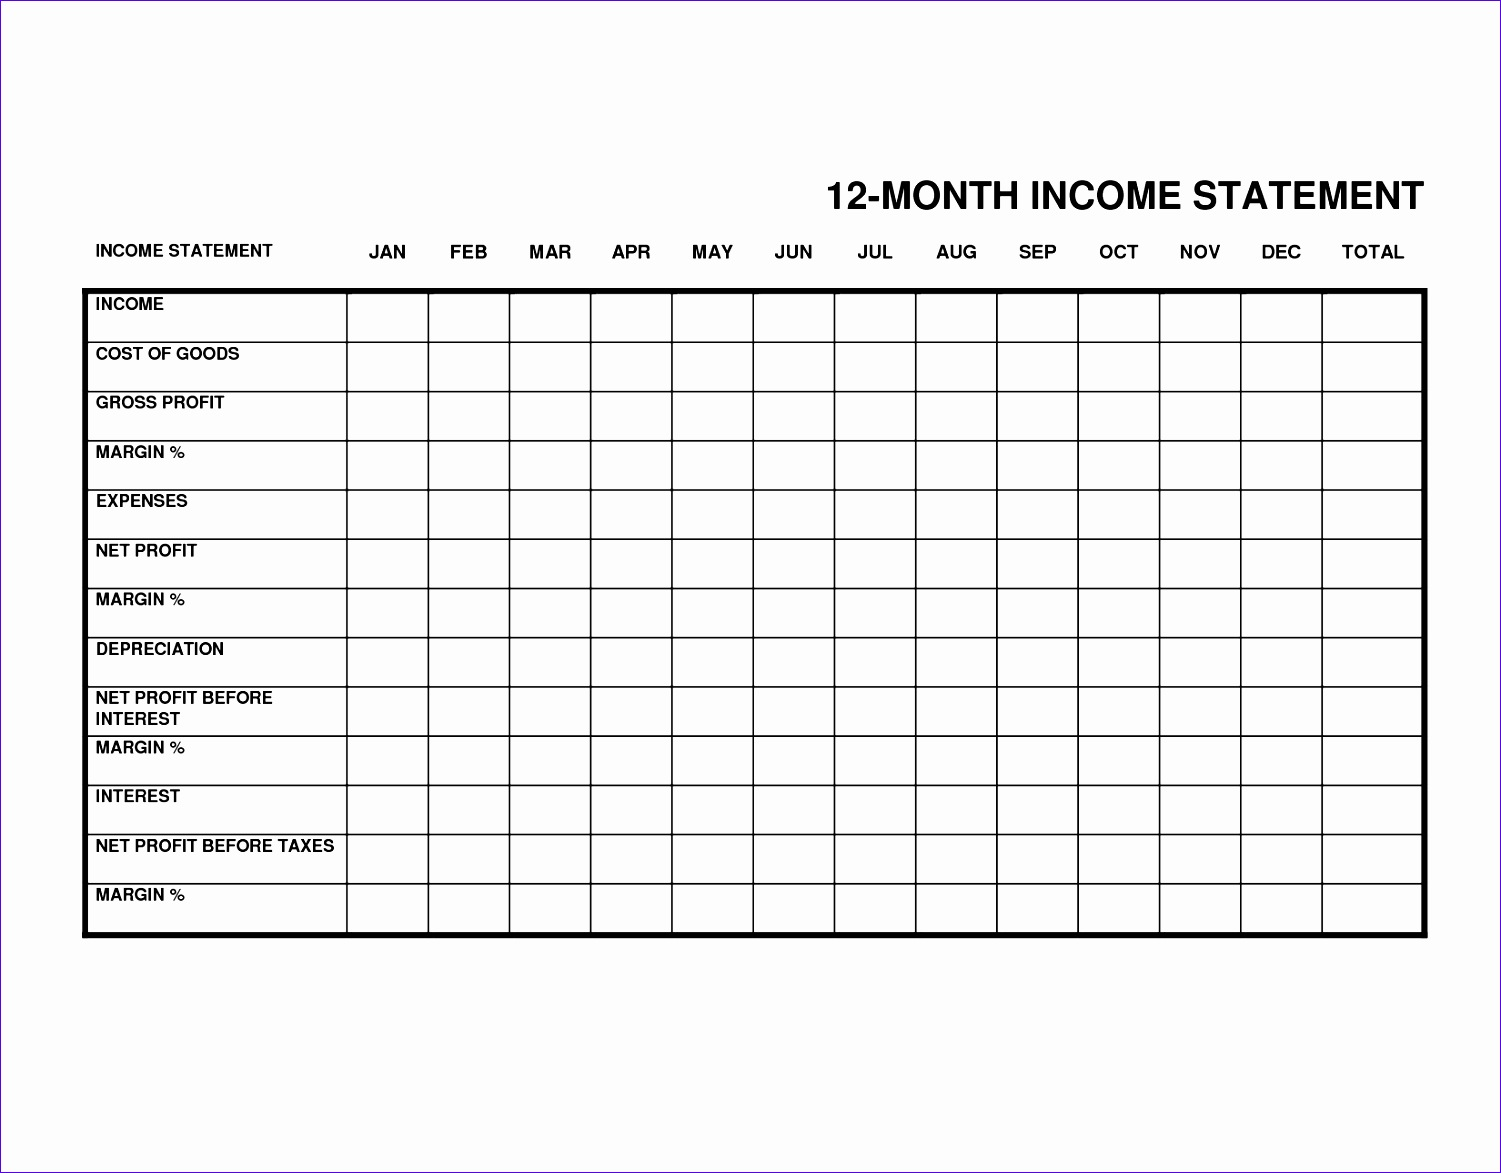 Monthly Income Statement Template Excel Rnngx Awesome Monthly In E Statement Small Business Monthly In E Statement